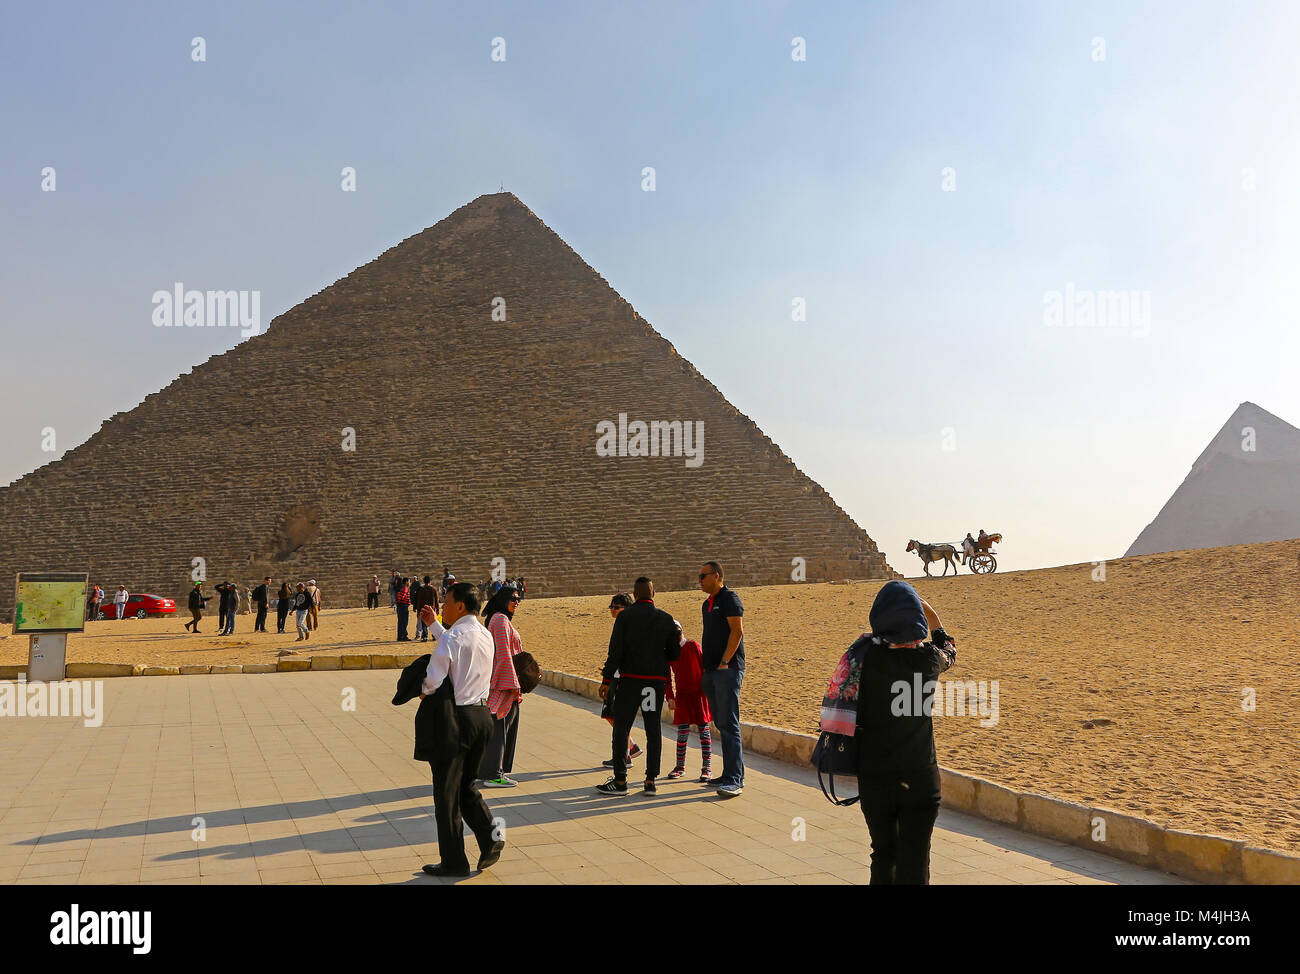 Pyramids, Giza, Egypt, North Africa - Stock Image